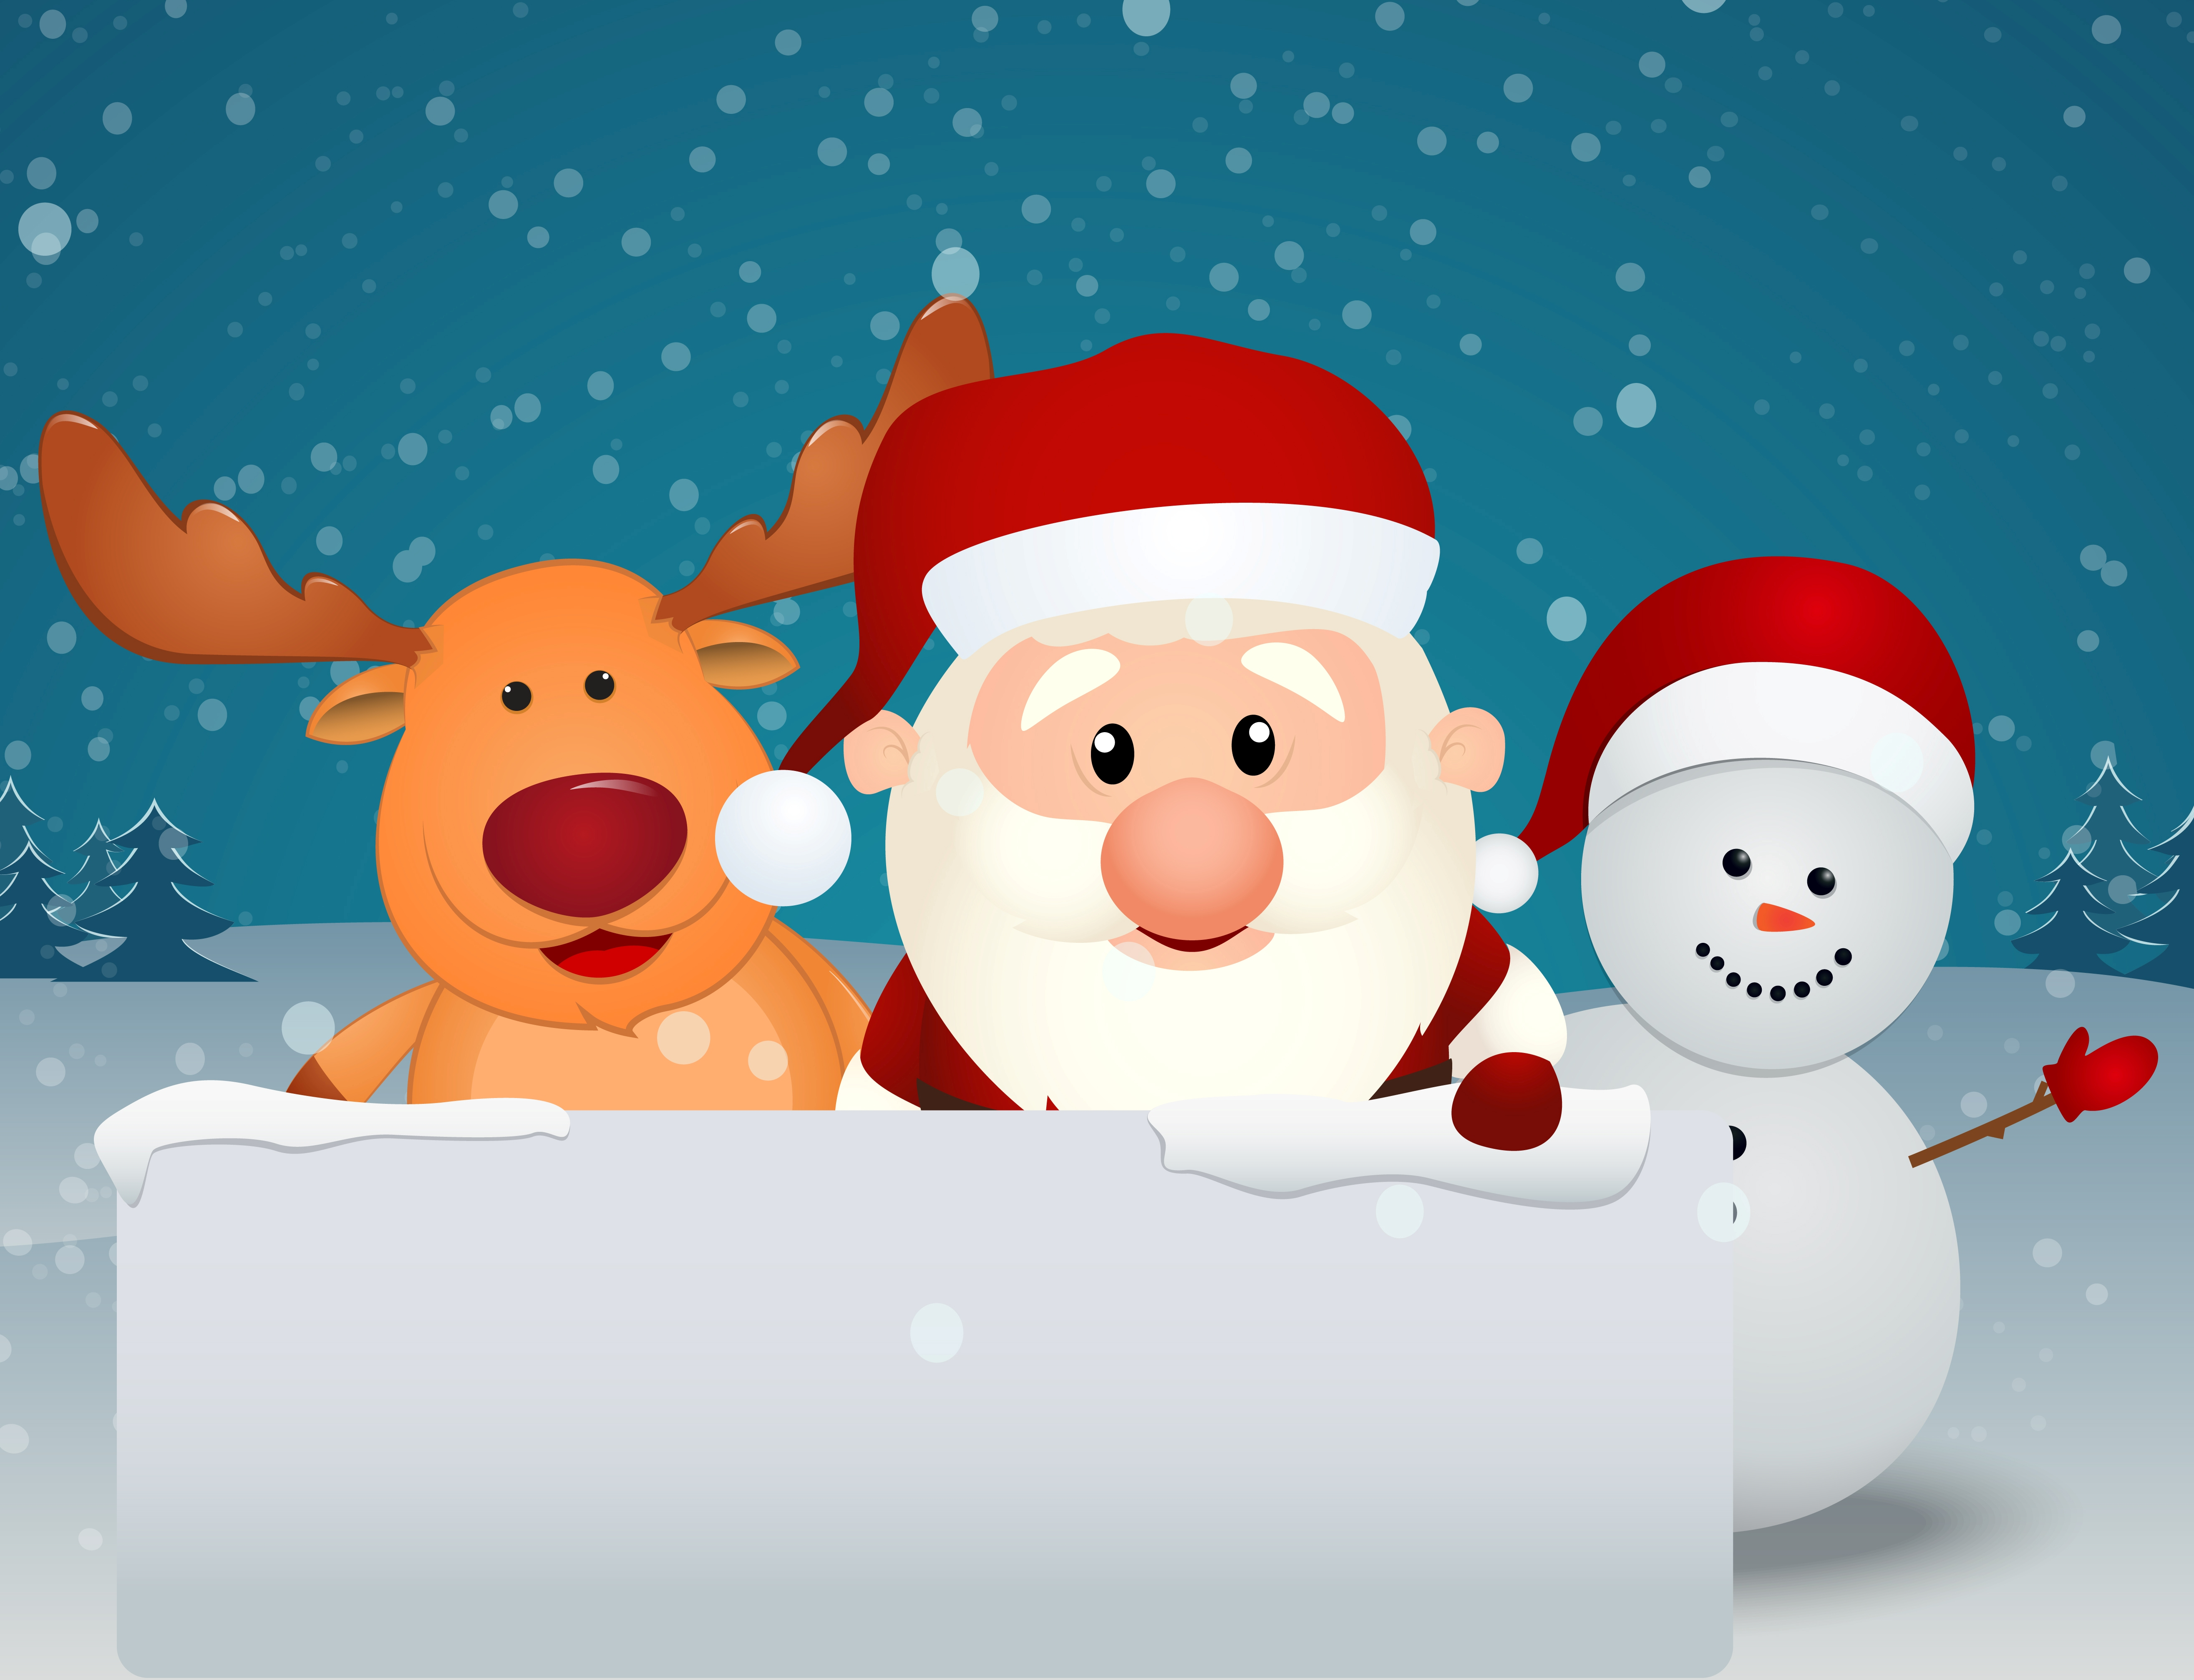 Santa Claus With Reindeer And Snowman